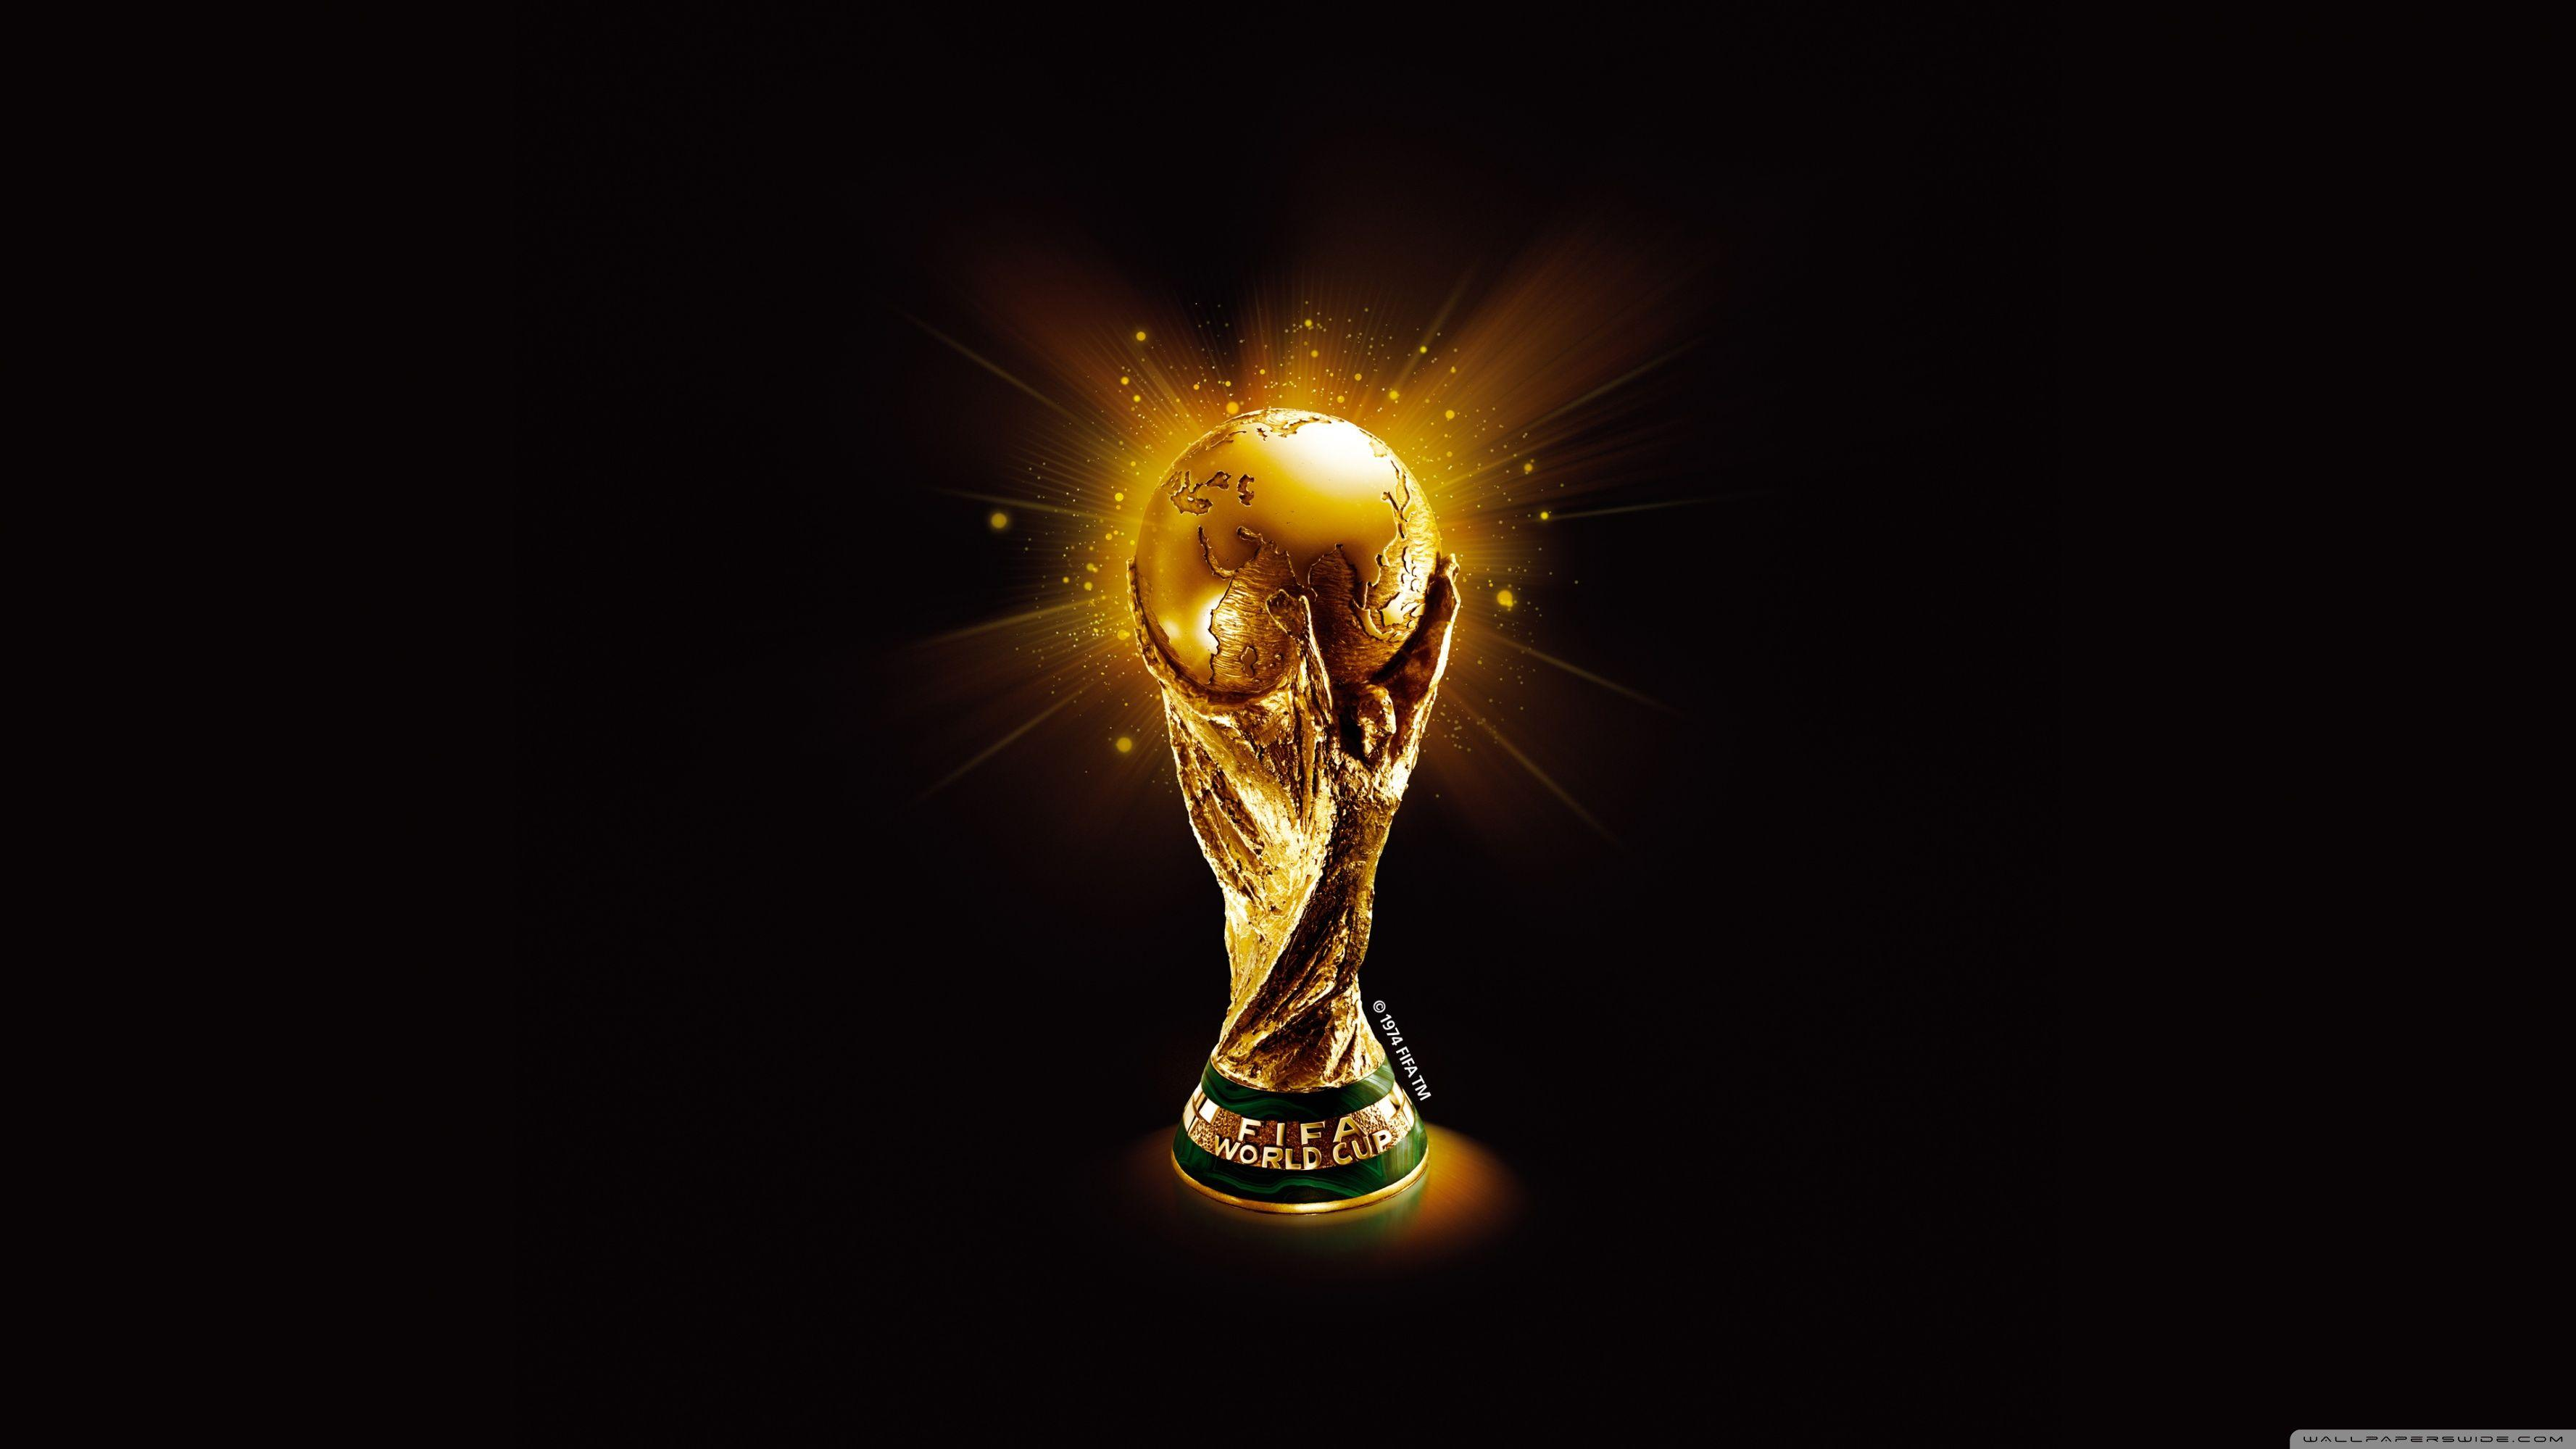 FIFA World Cup Teams Background